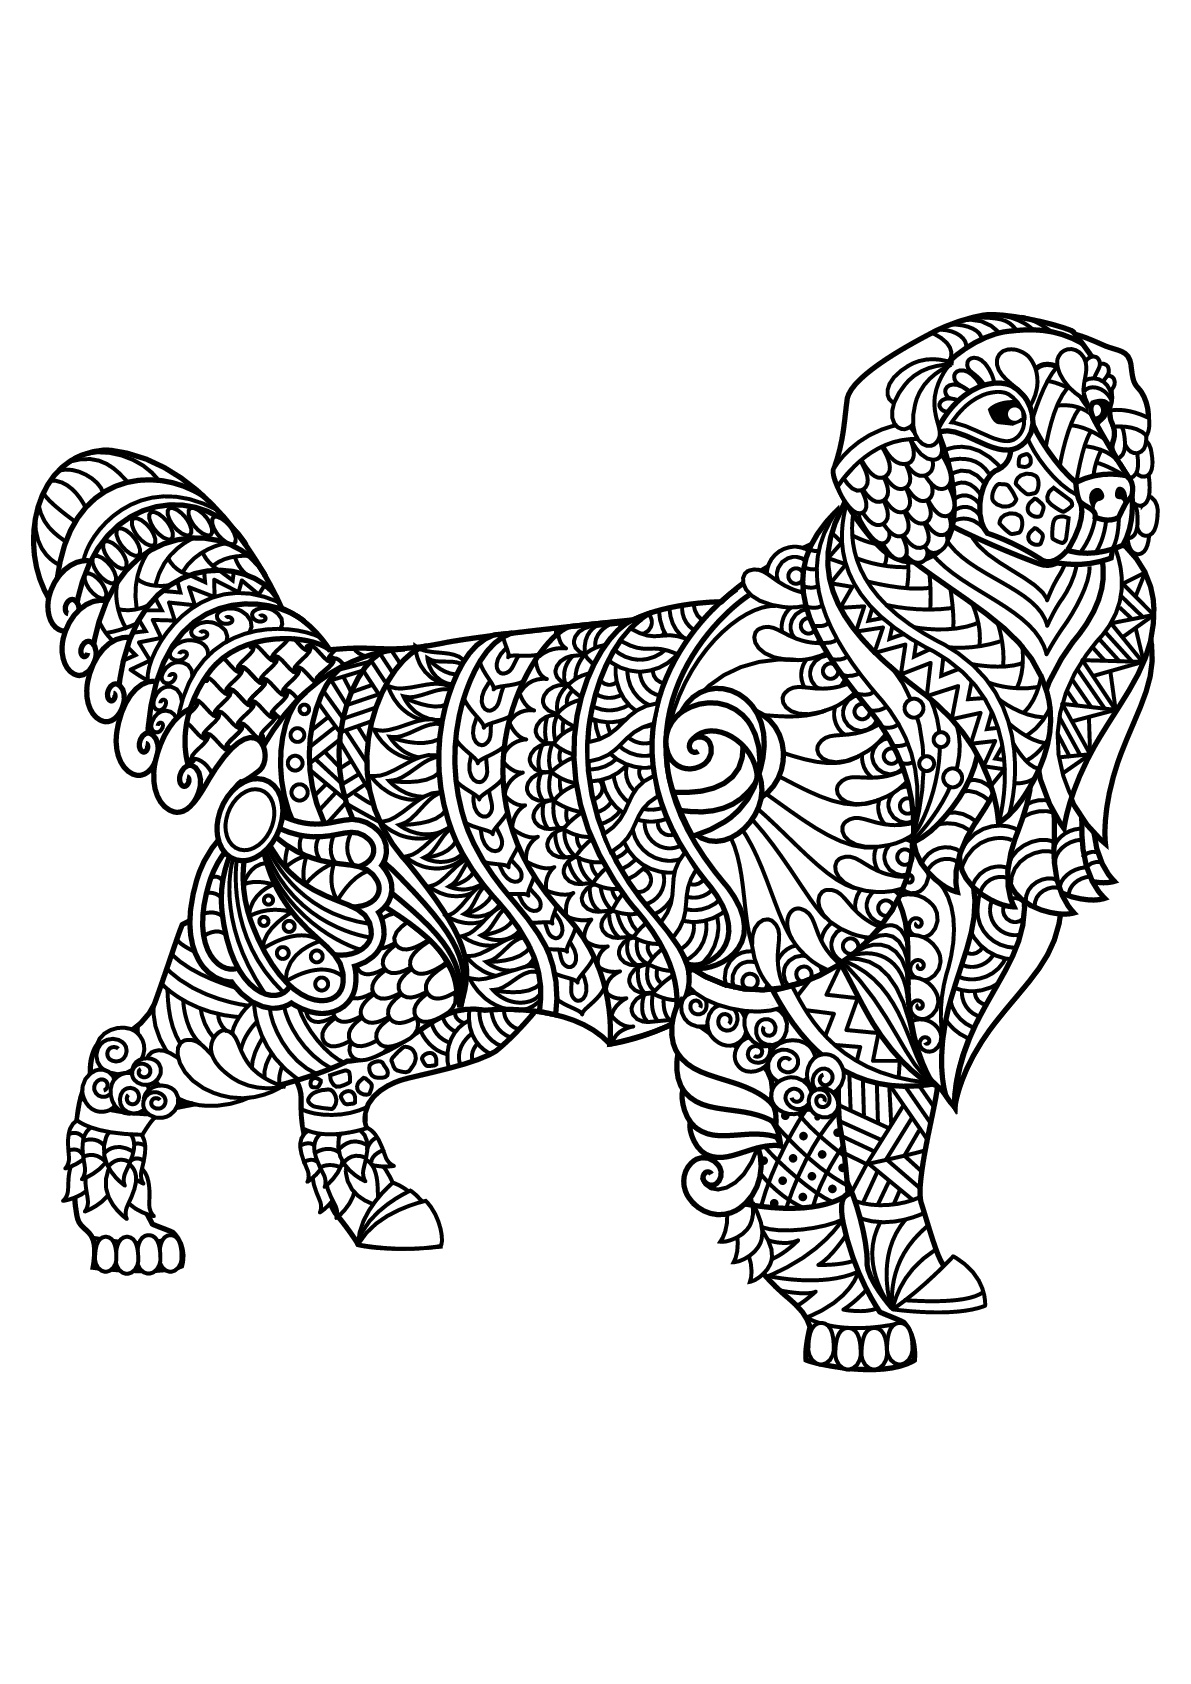 coloring pages for adults dogs dog coloring pages for adults best coloring pages for kids adults pages for dogs coloring